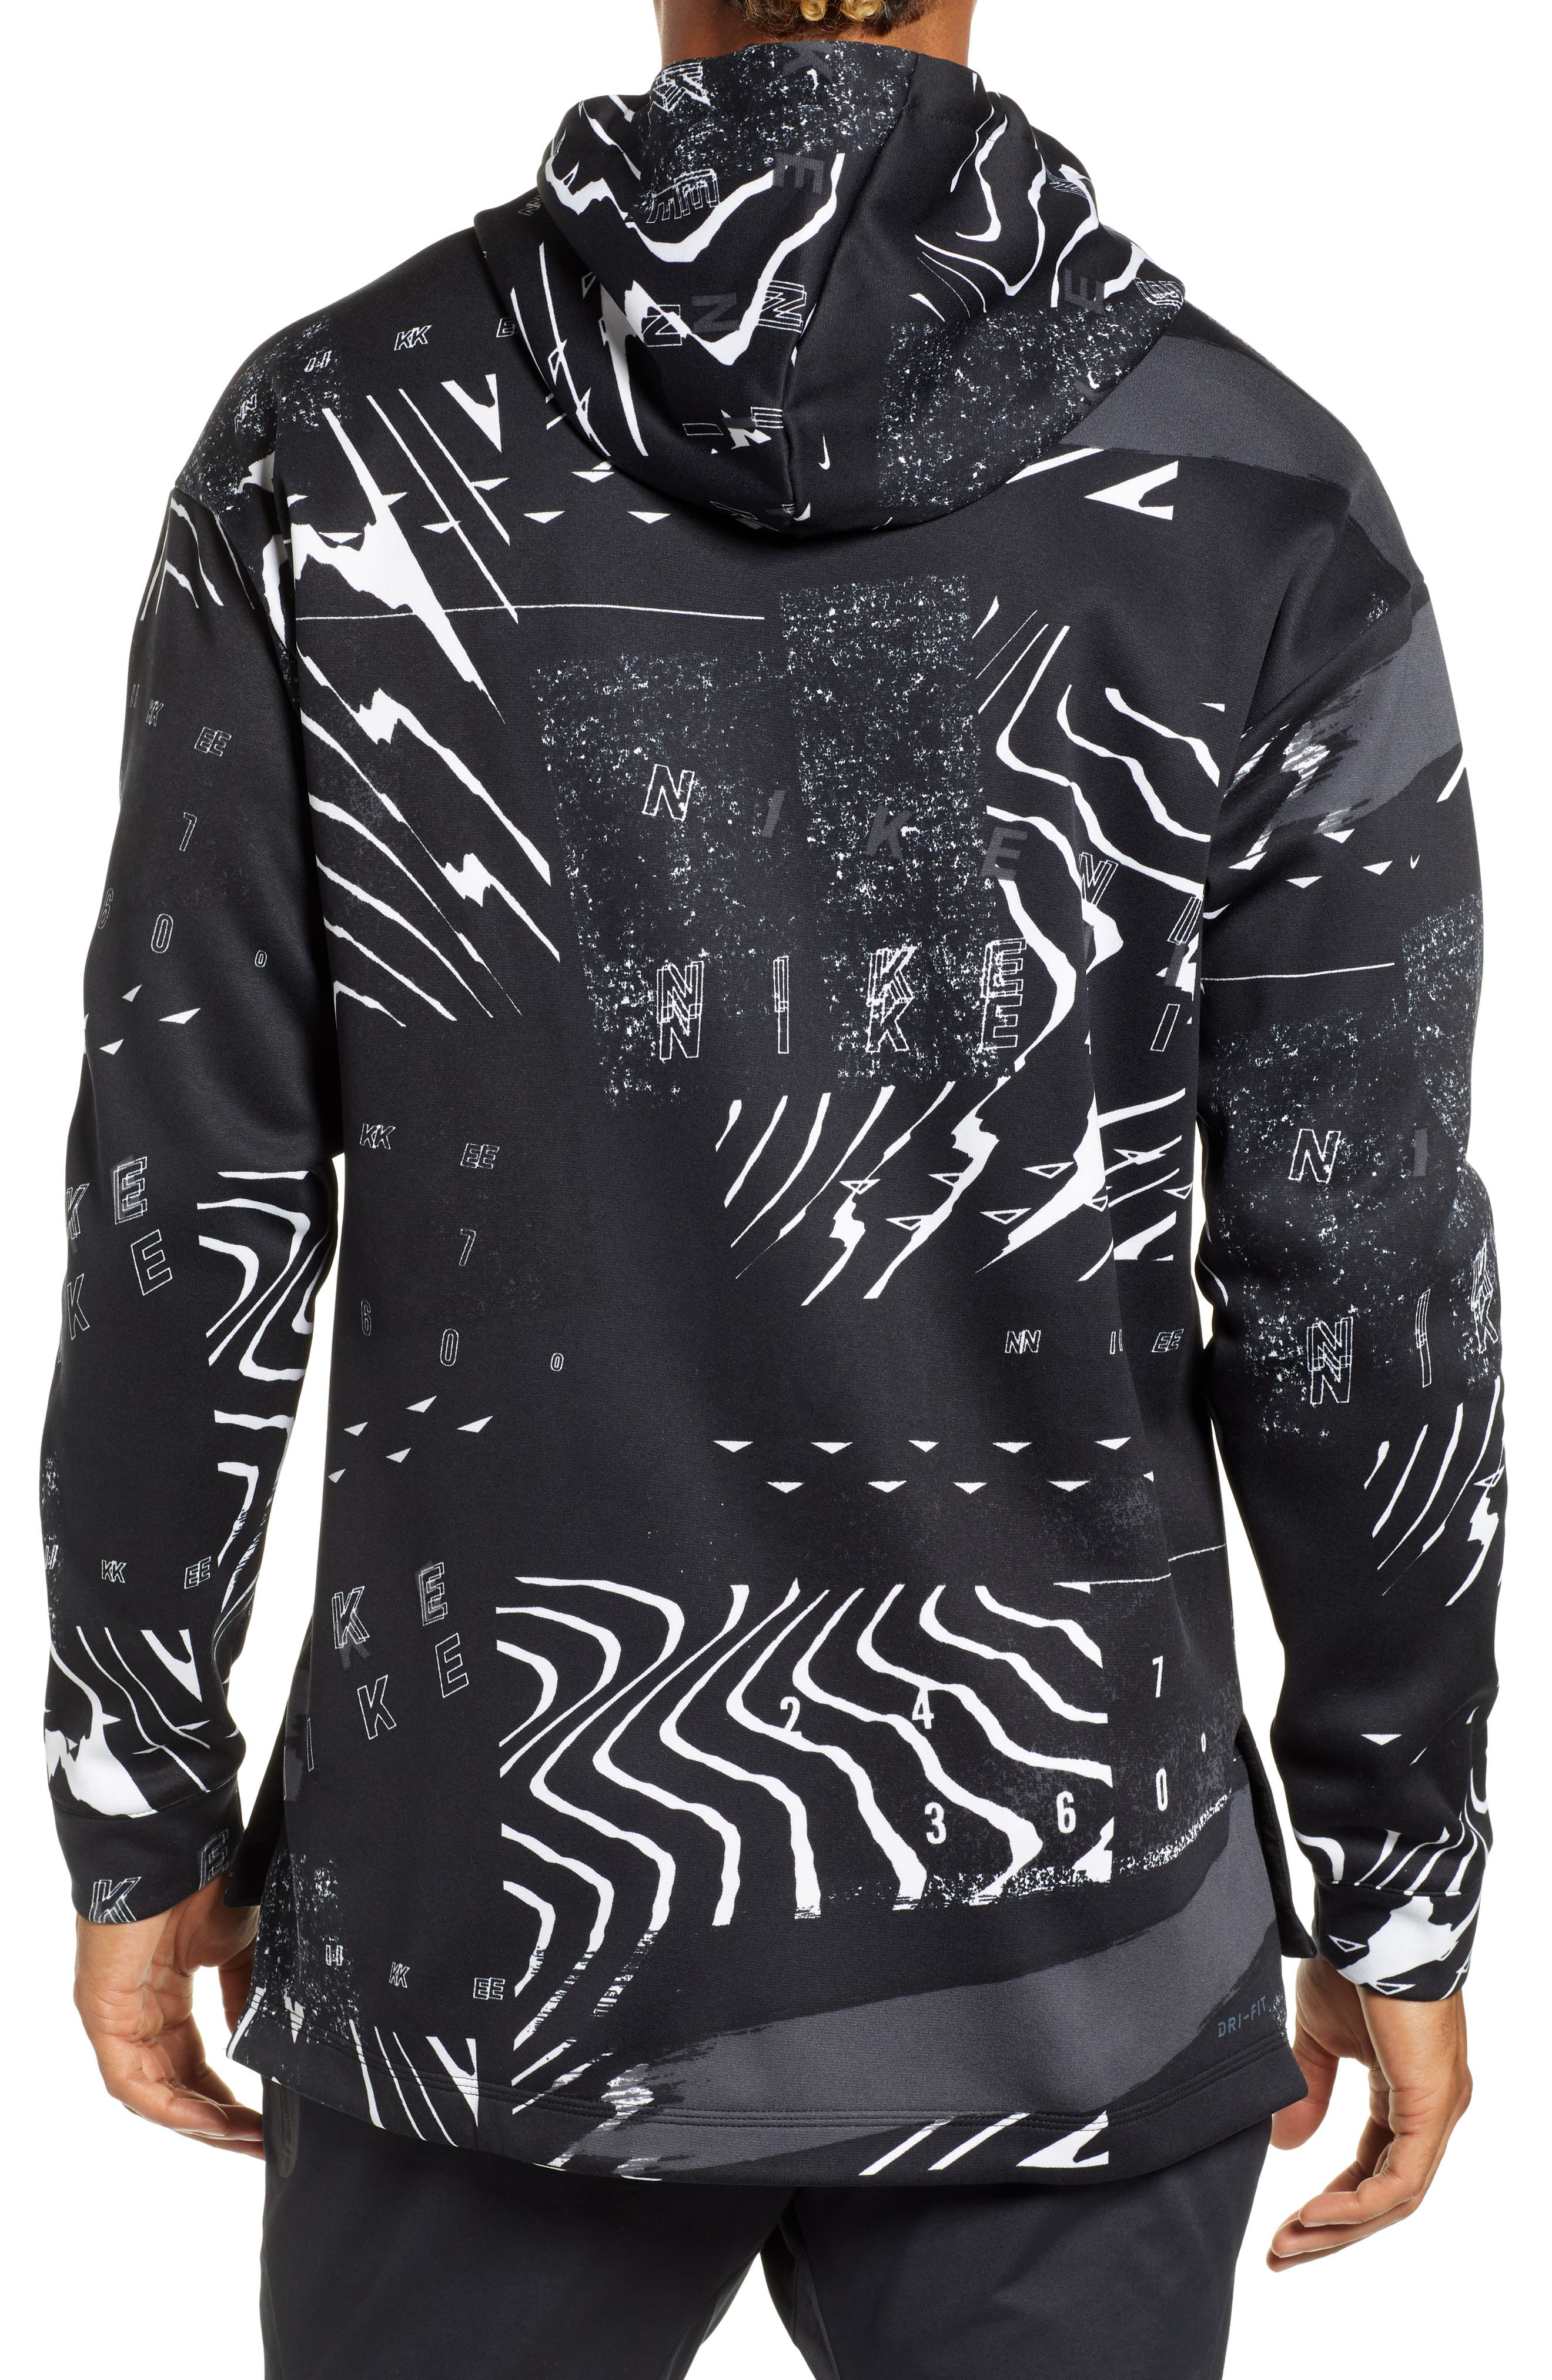 3.0 Therma-FIT Hoodie,                             Alternate thumbnail 2, color,                             BLACK/ WHITE/ PINK FOAM